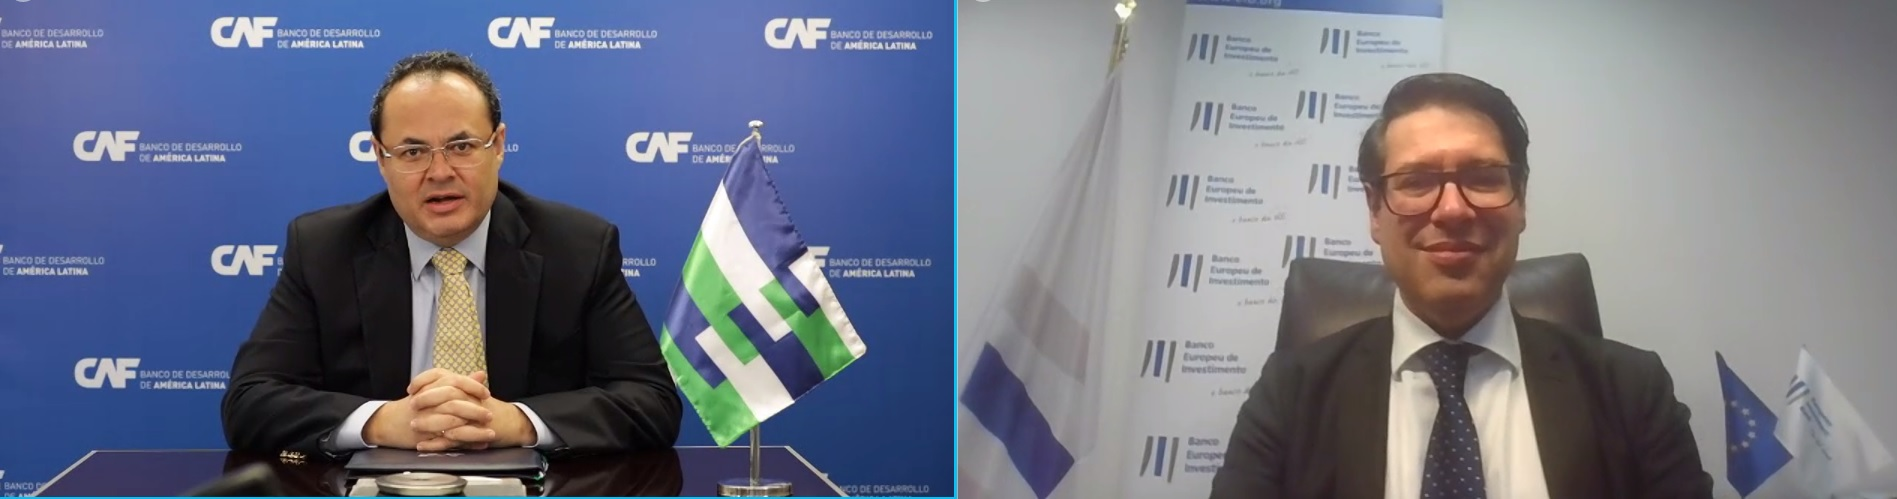 CAF and EIB will co-finance climate action projects that boost employment and competitiveness in Latin America